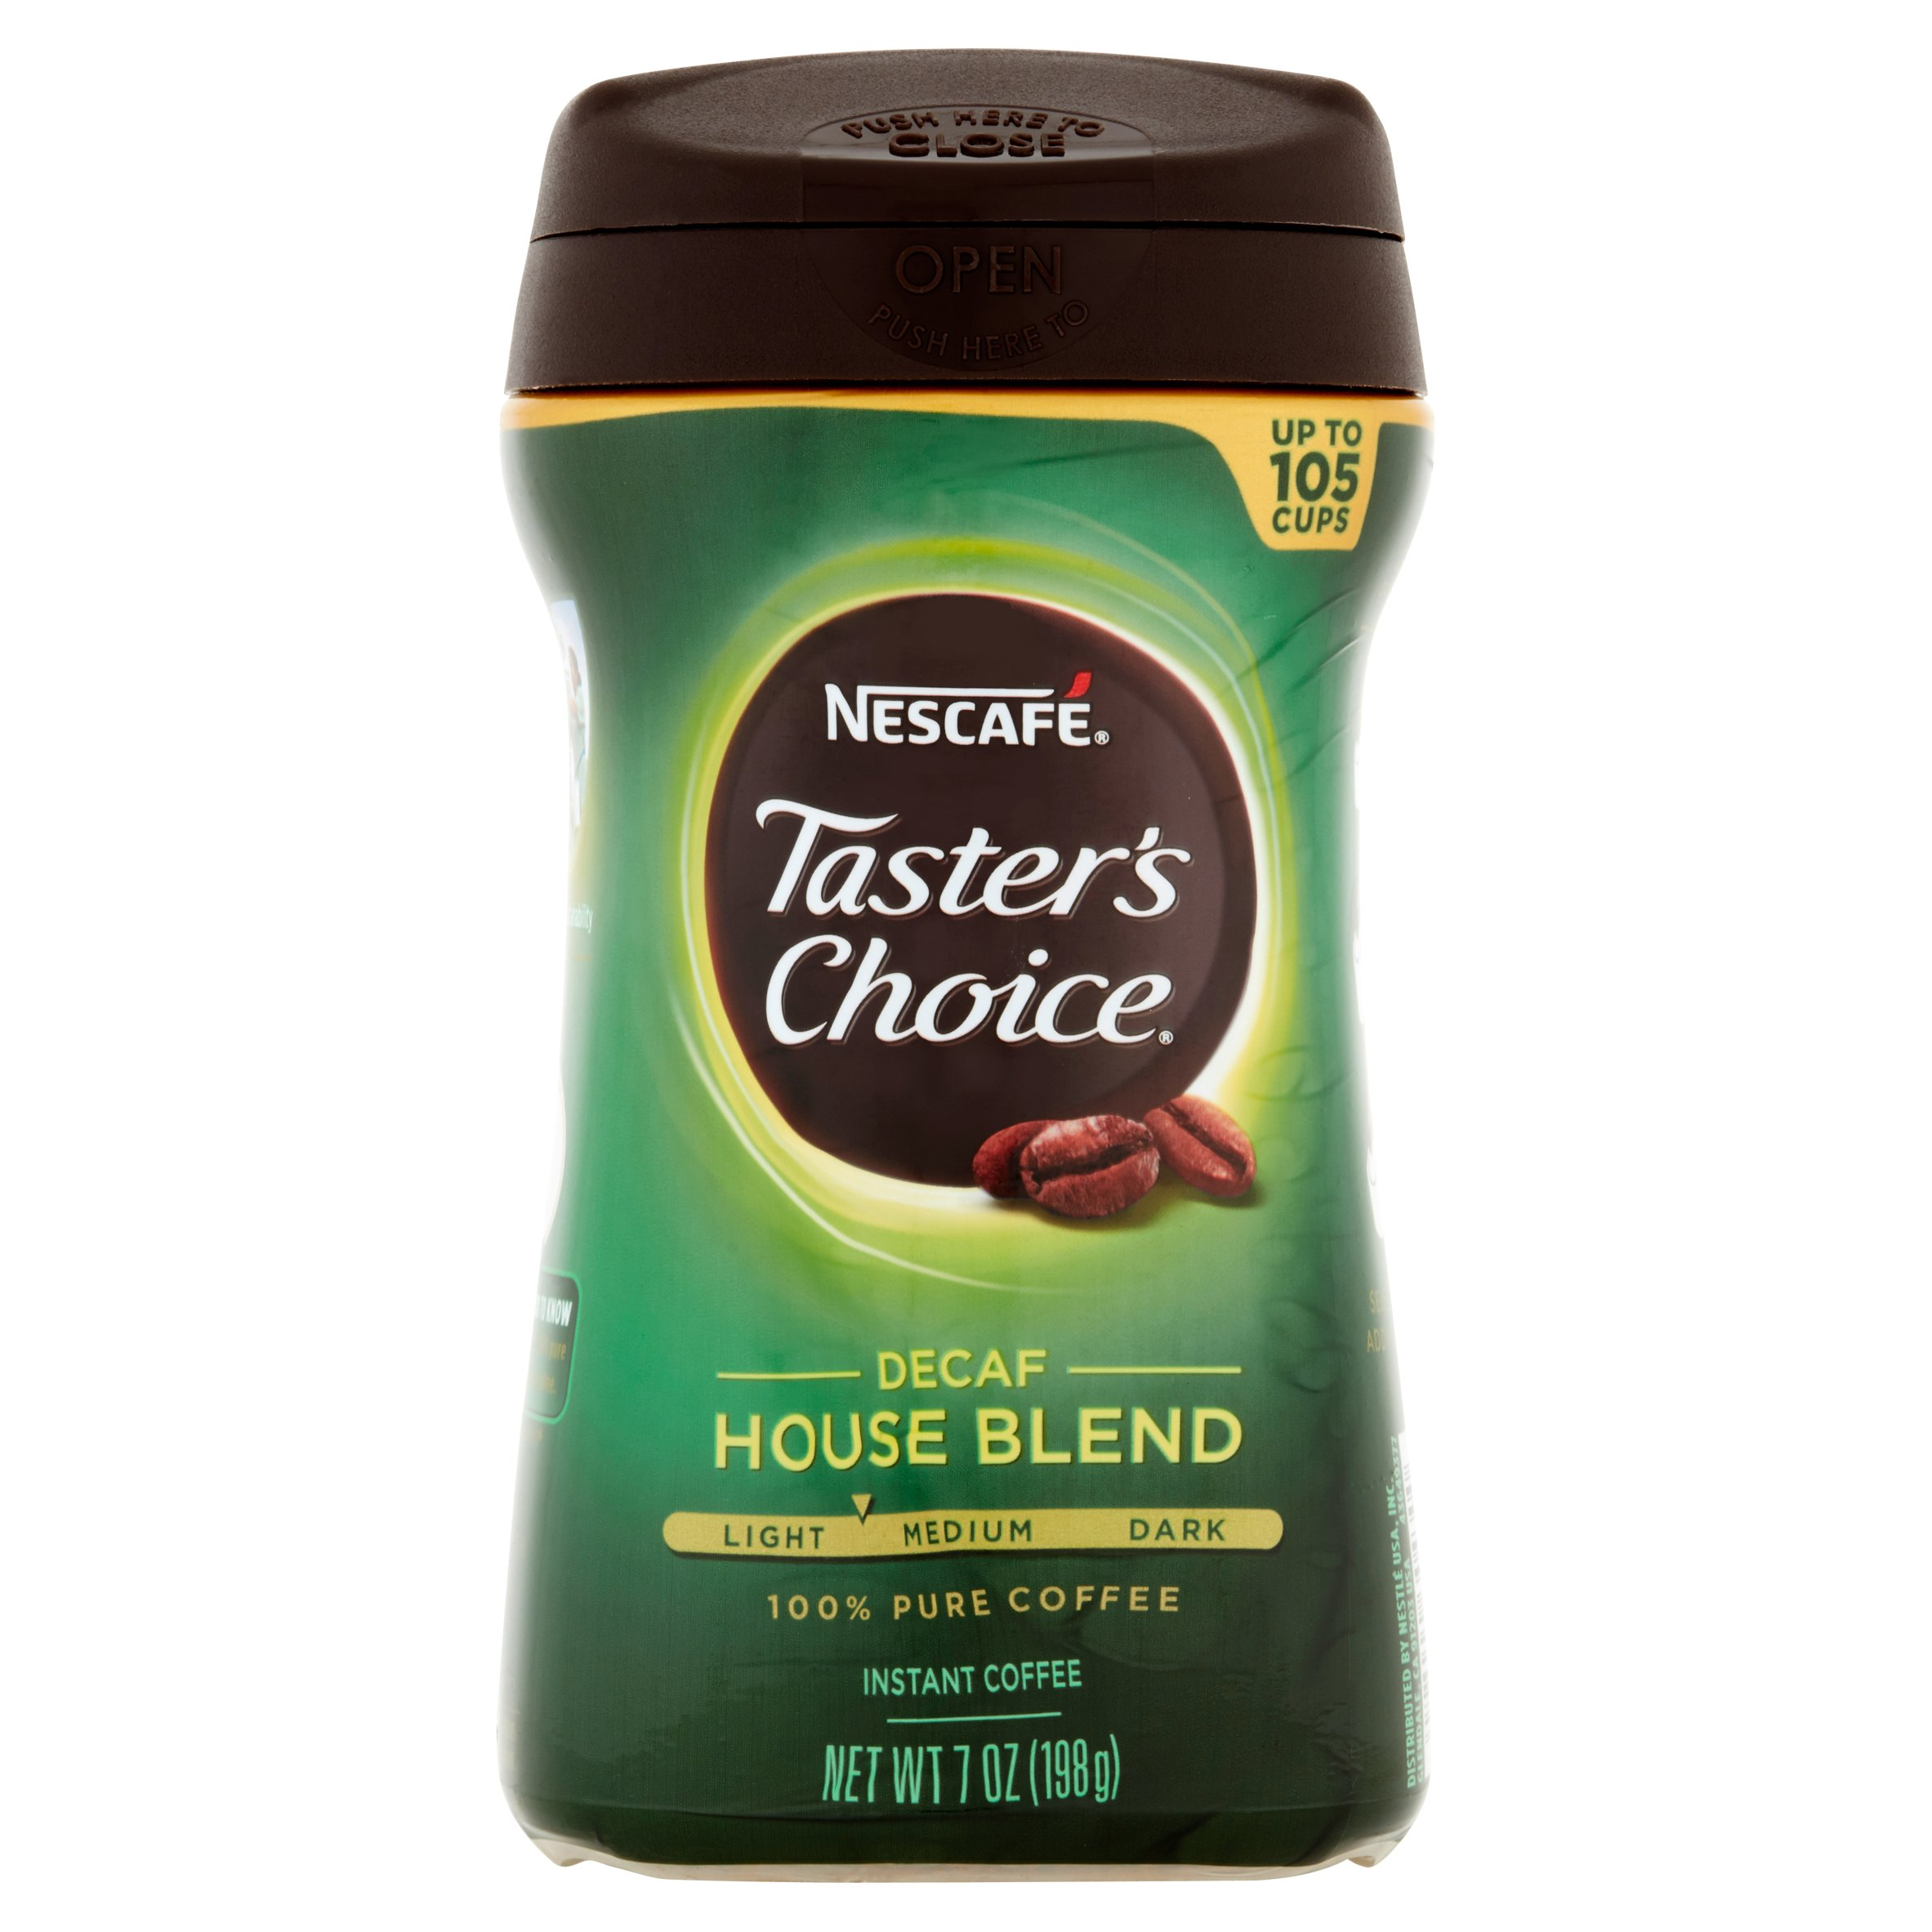 Nescafe Taster's Choice Decaf House Blend Instant Coffee 7oz